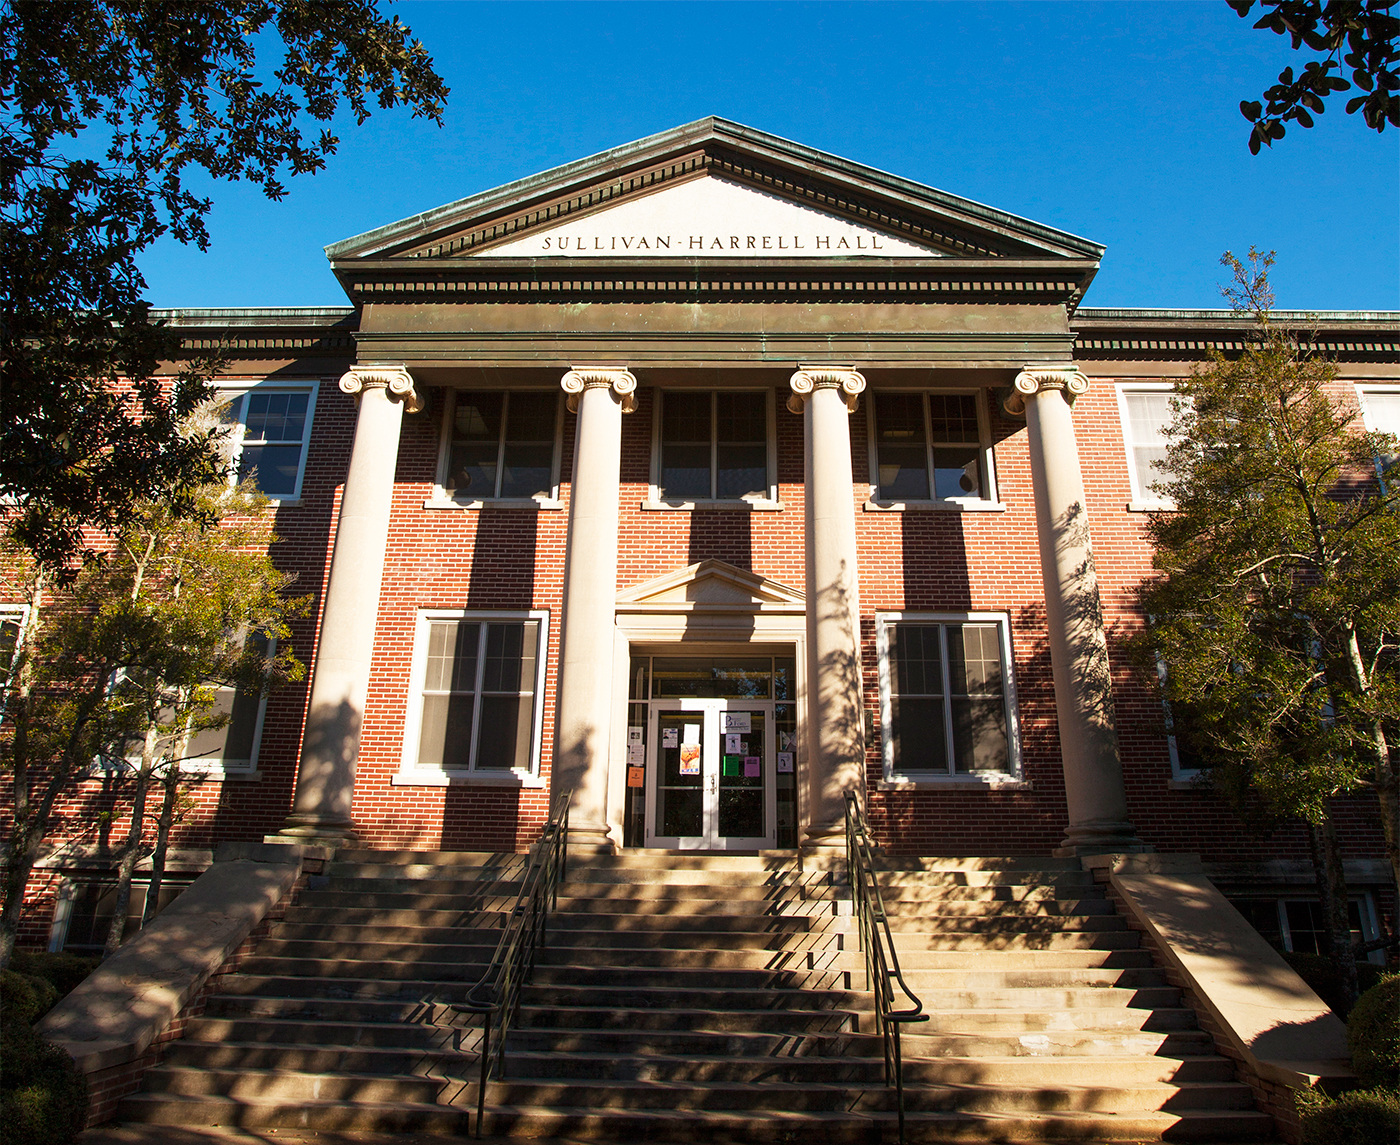 Sullivan-Harrell Hall